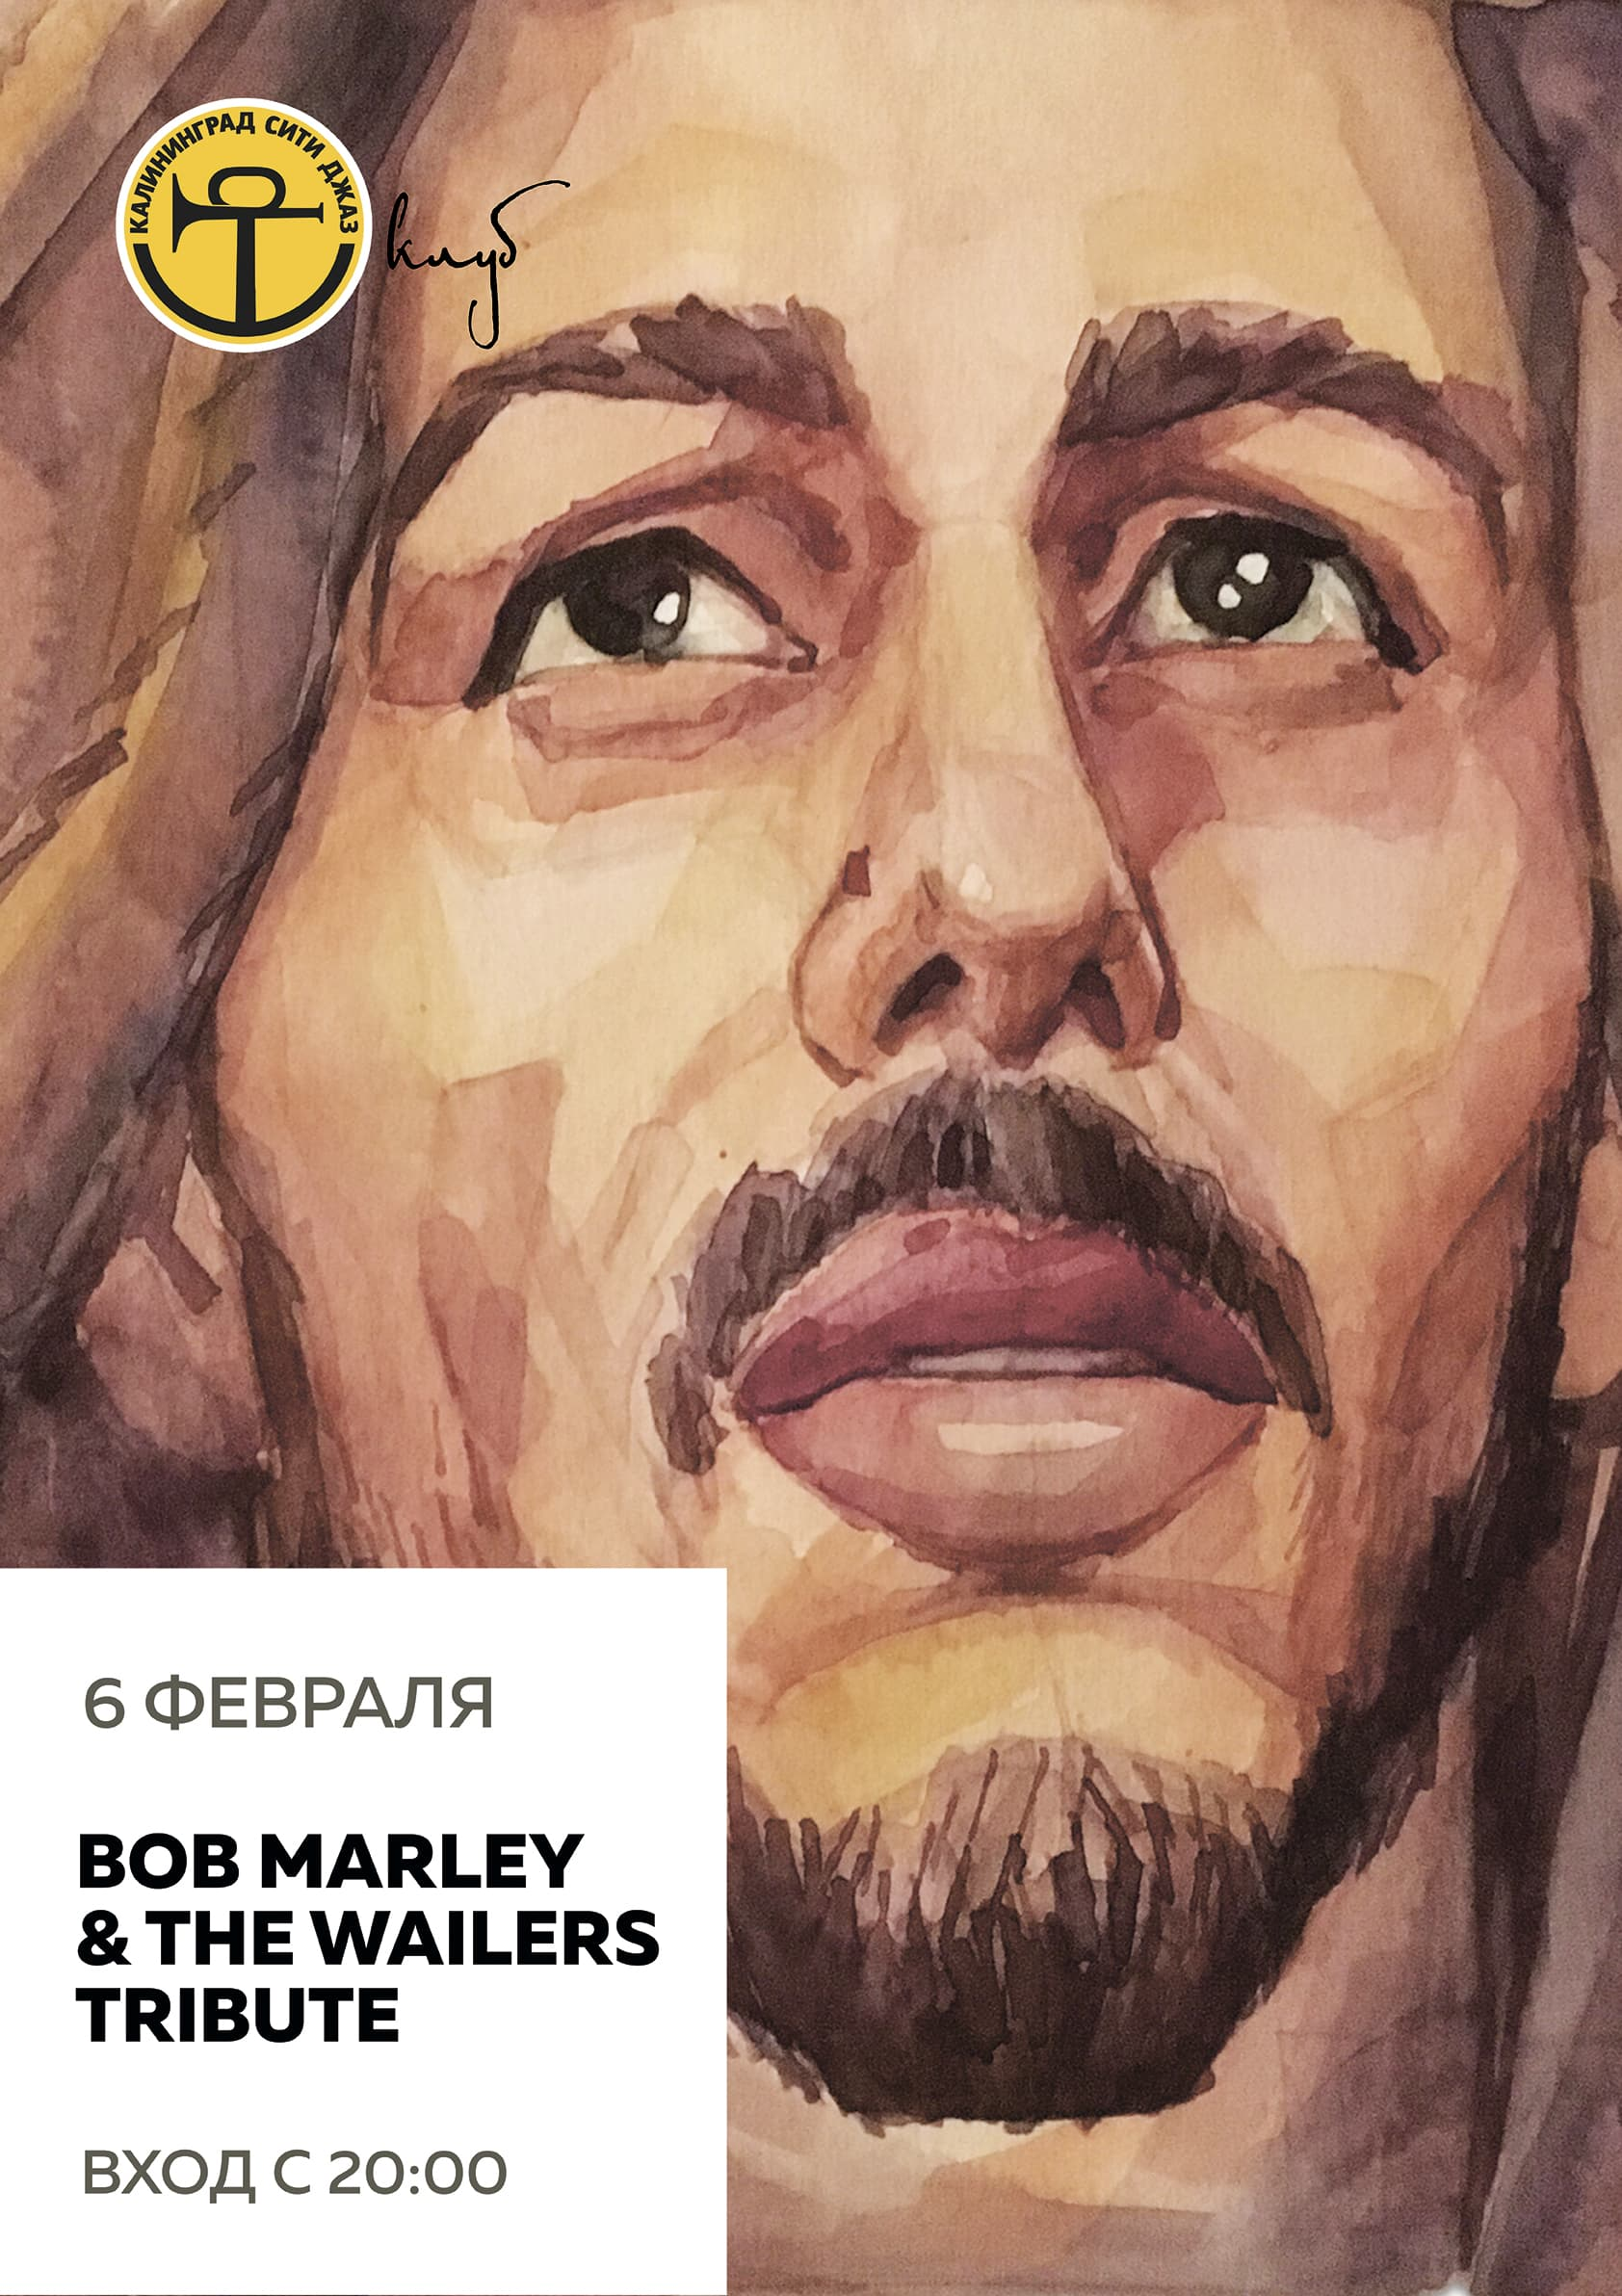 Bob Marley & The Wailers Tribute